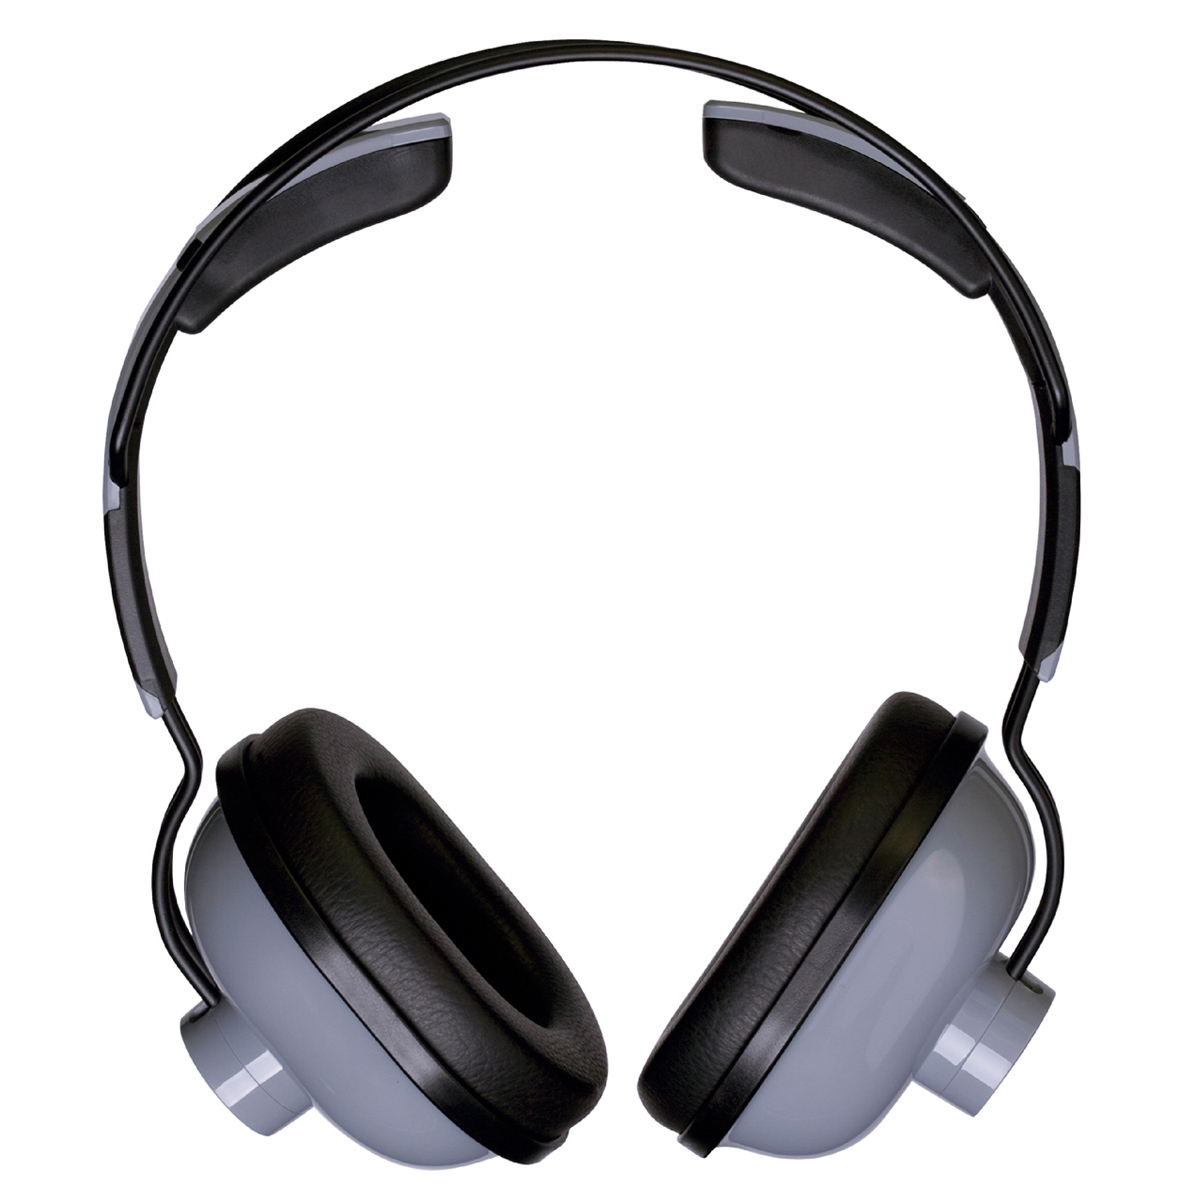 HD651 - Fone de Ouvido On-ear Cinza HD 651 - Superlux